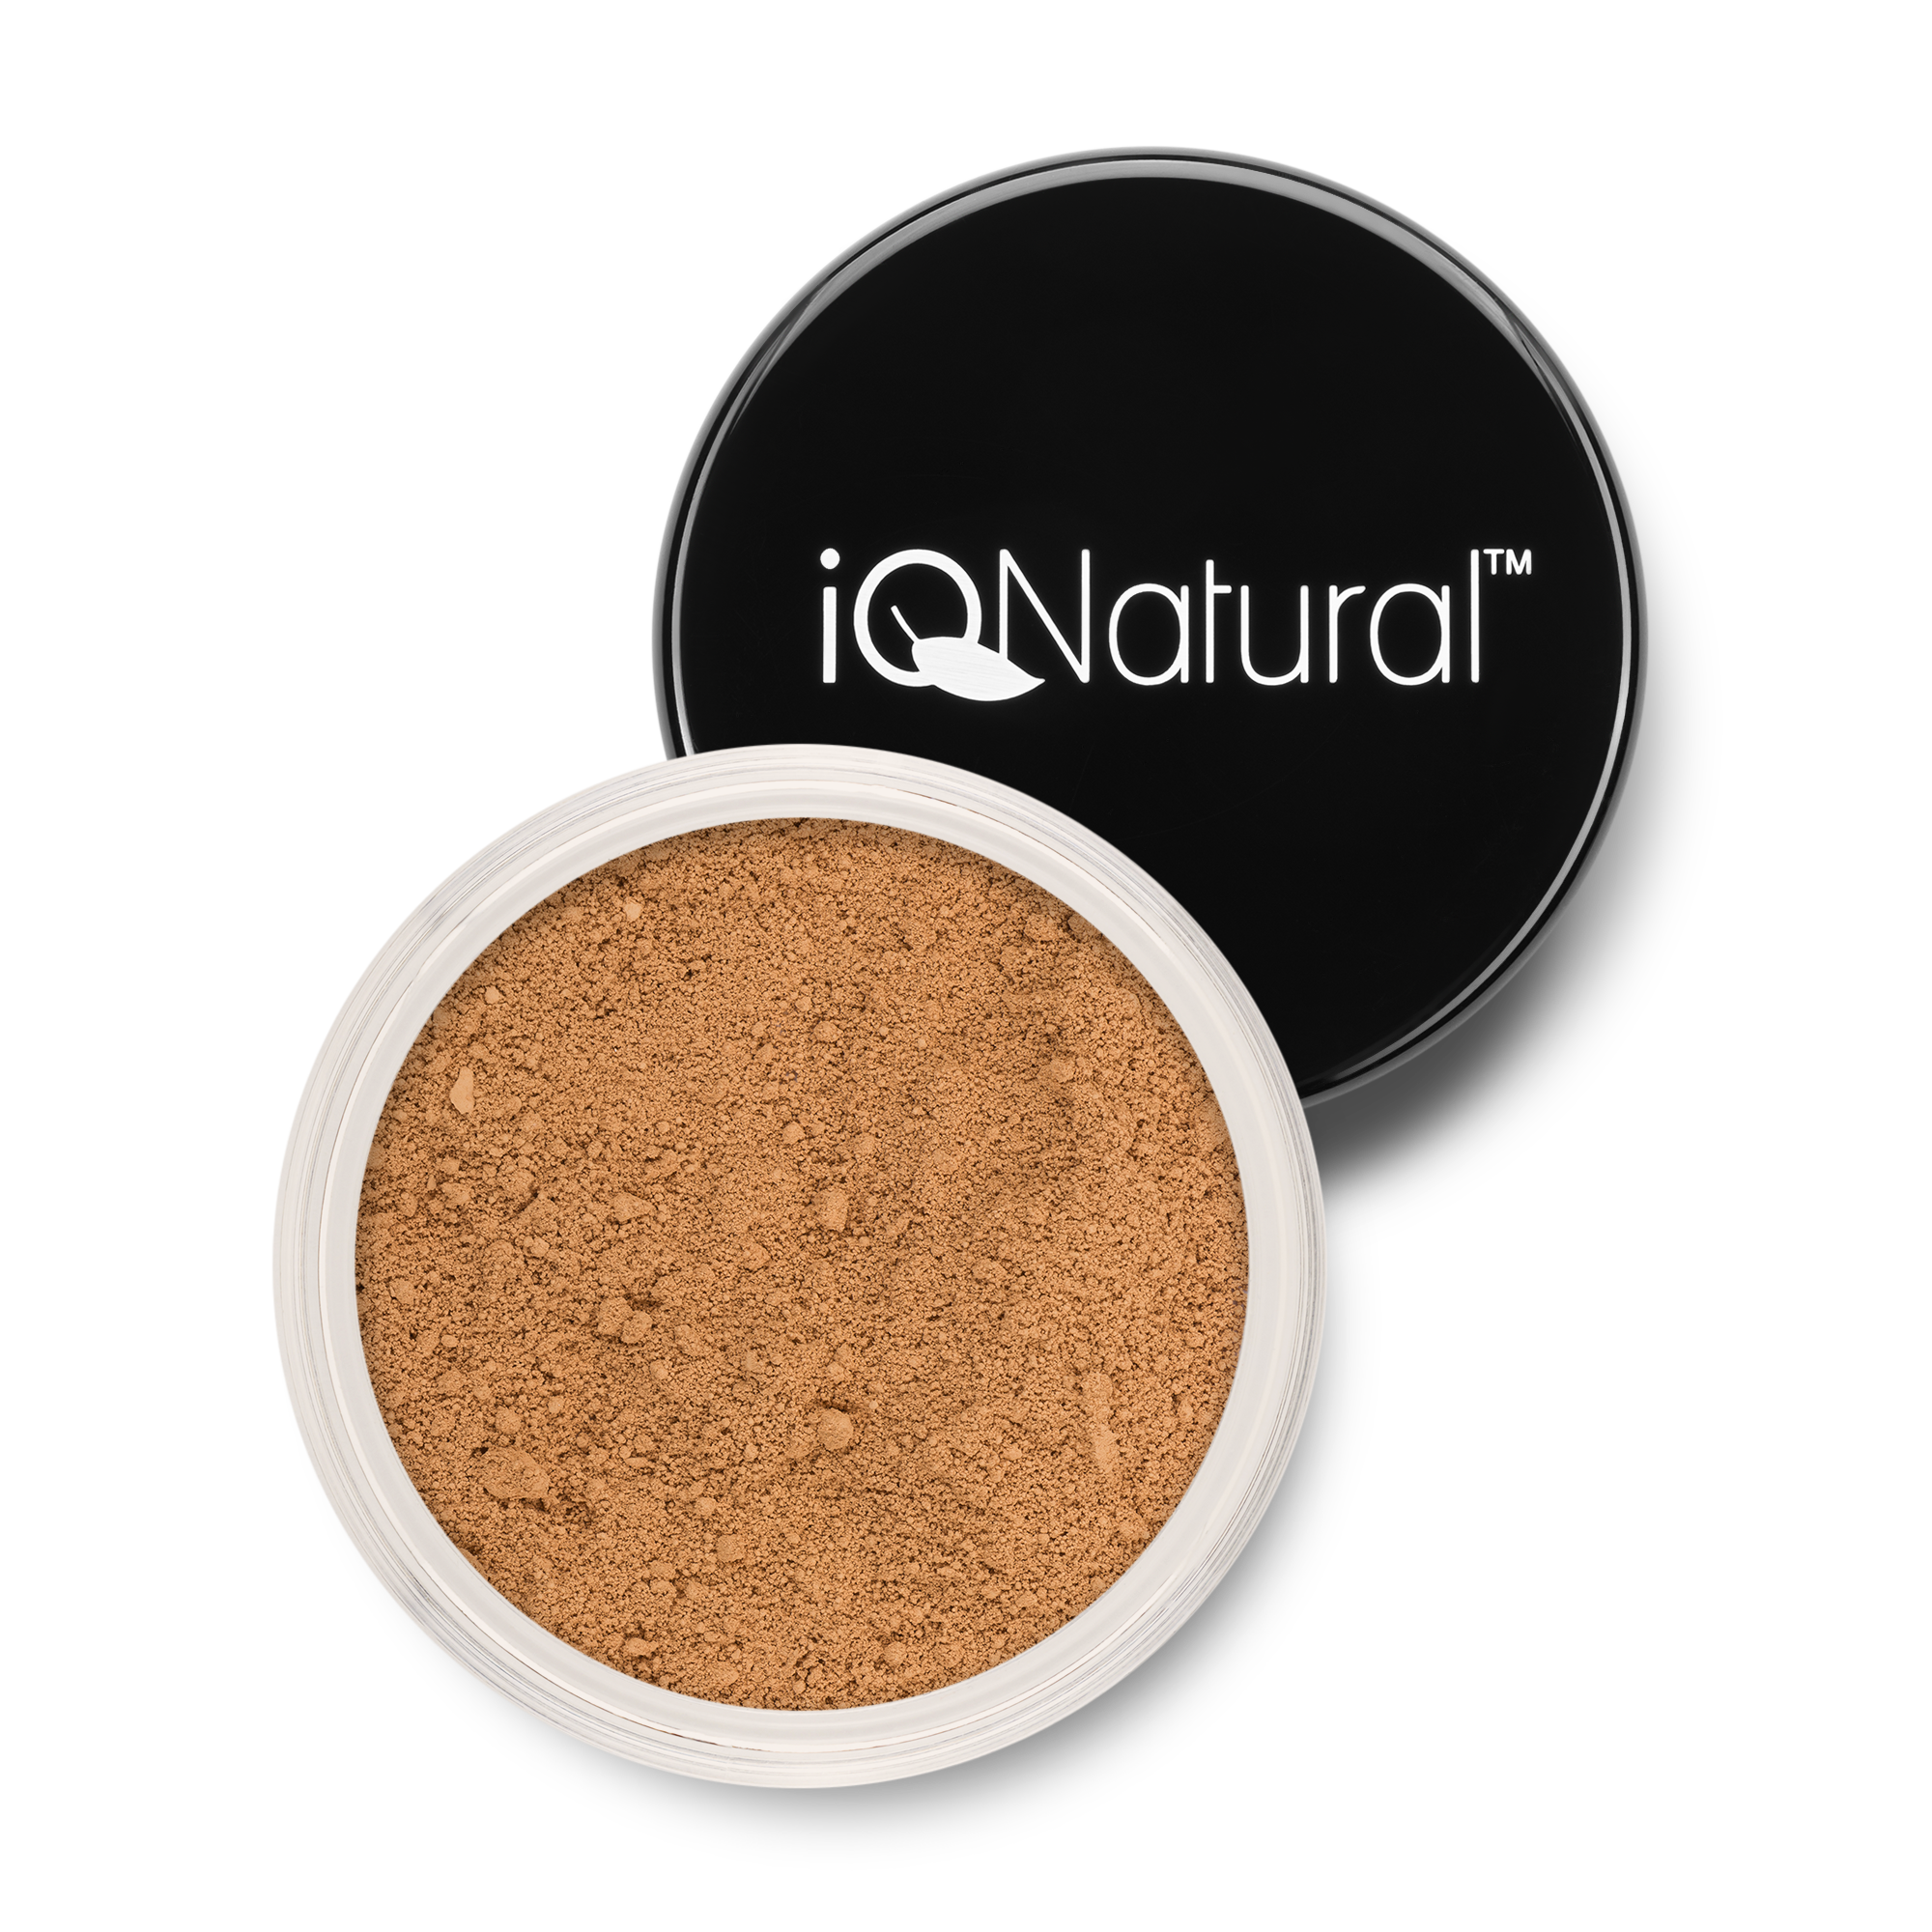 Organic powder product photo shoot